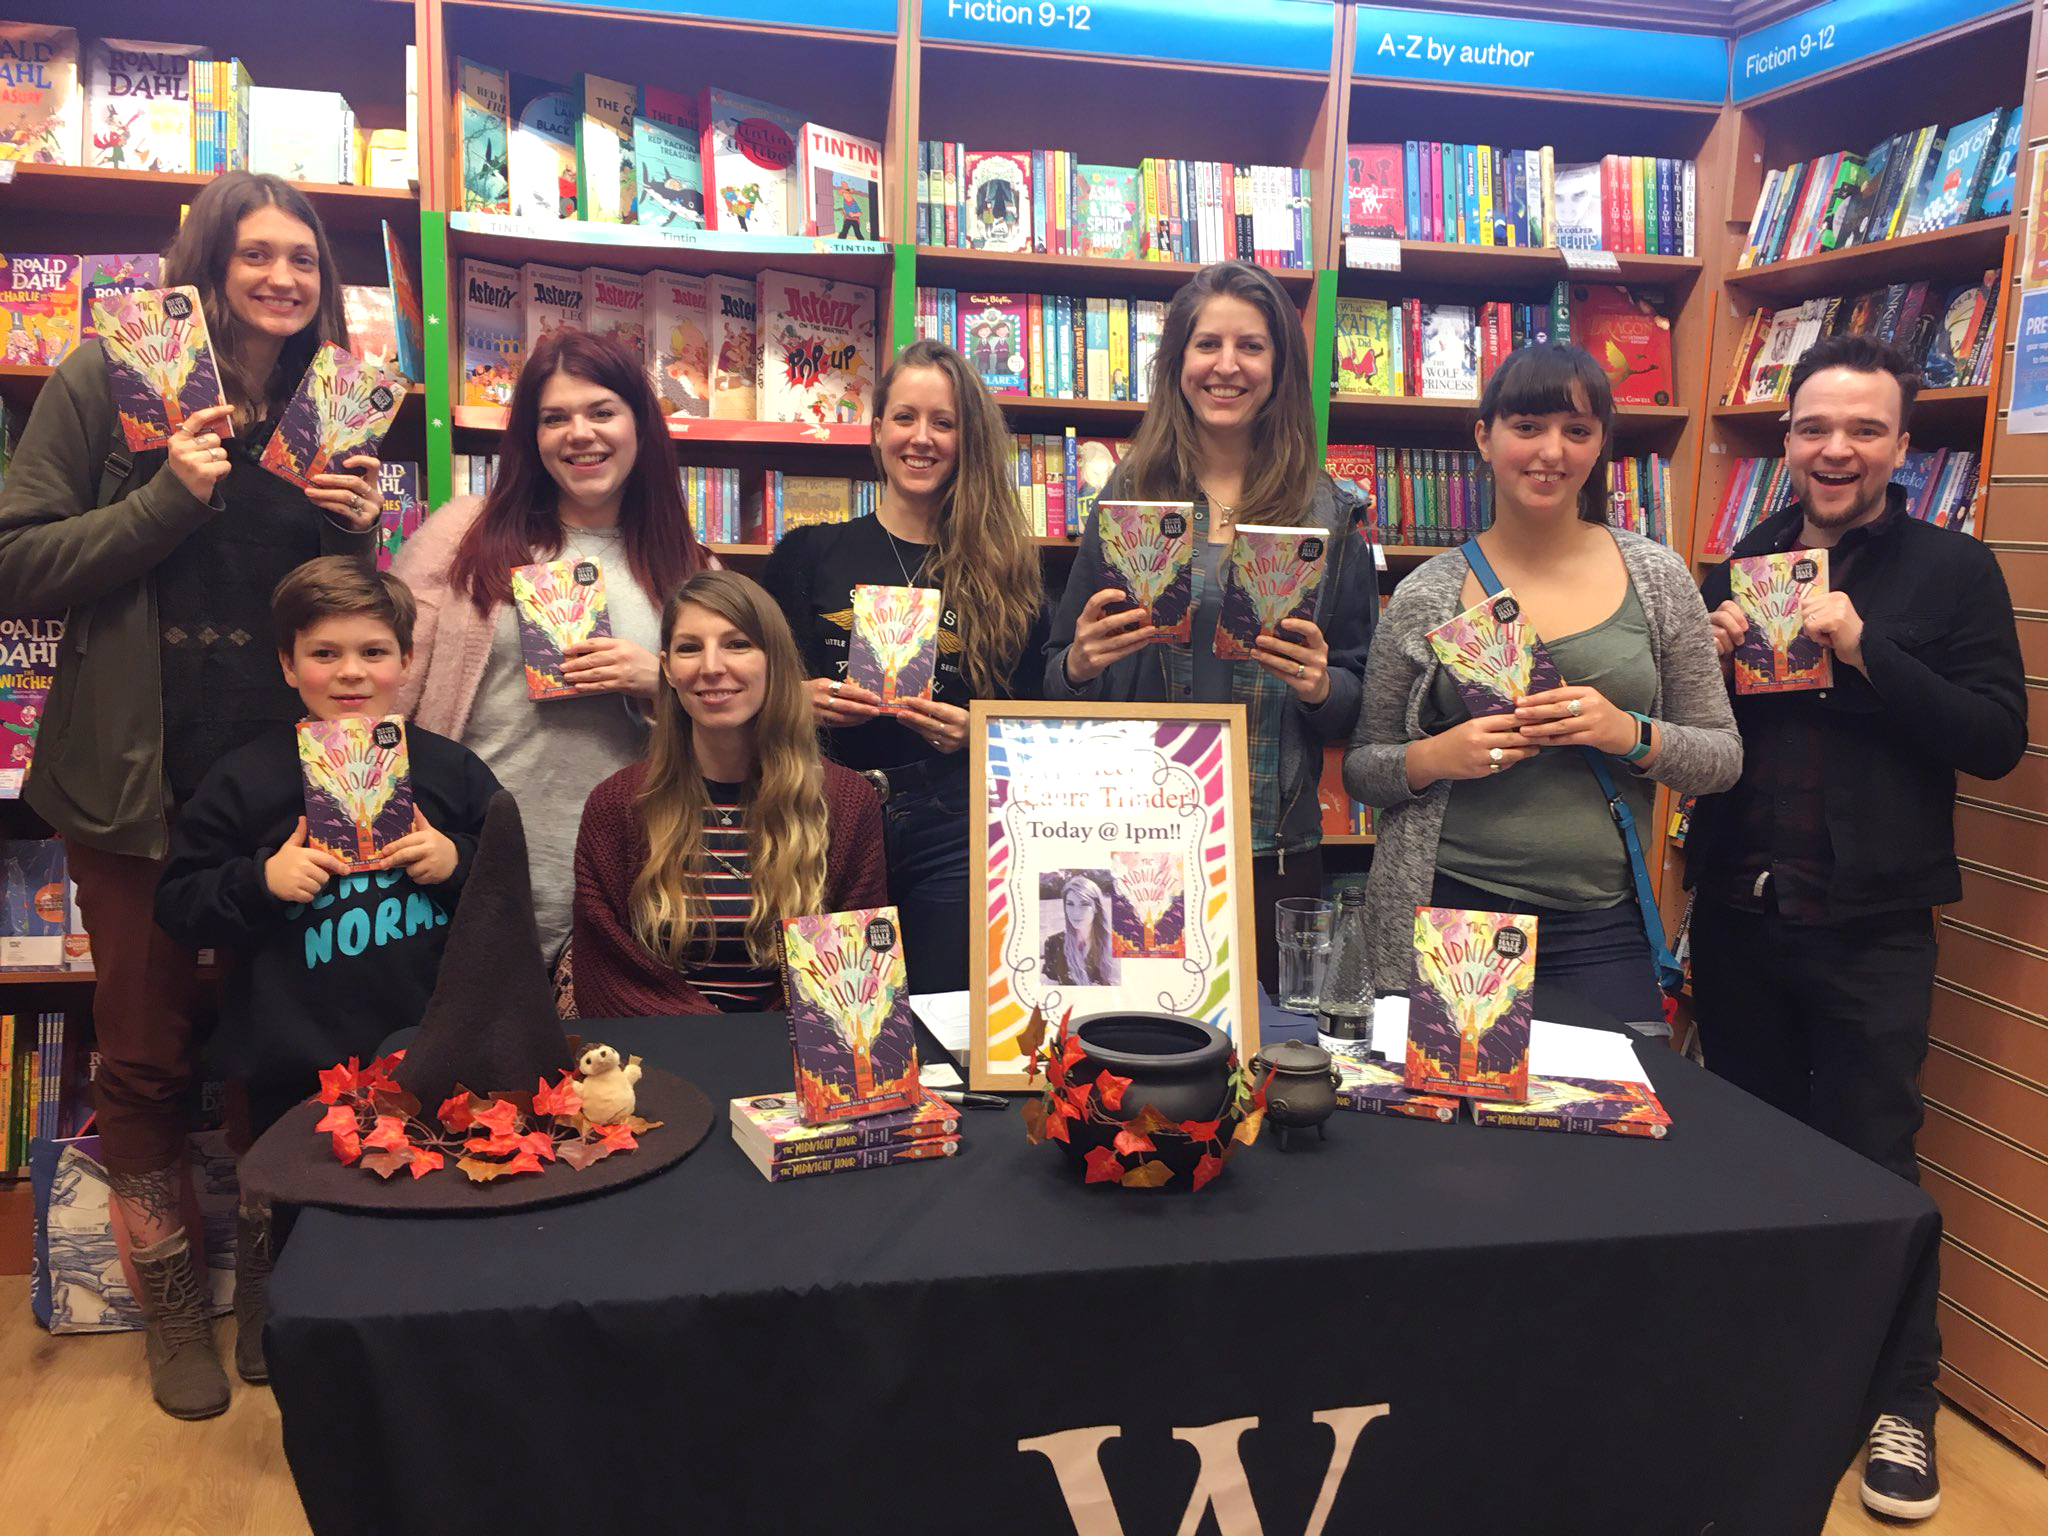 Loved my trip to Waterstones Milton Keynes Midsummer! Big thanks to the excellent staff (especially Nikki, Sean & Vicky), the children (who all created some fantastic monsters!) and my awesome MK friends who came to support me!